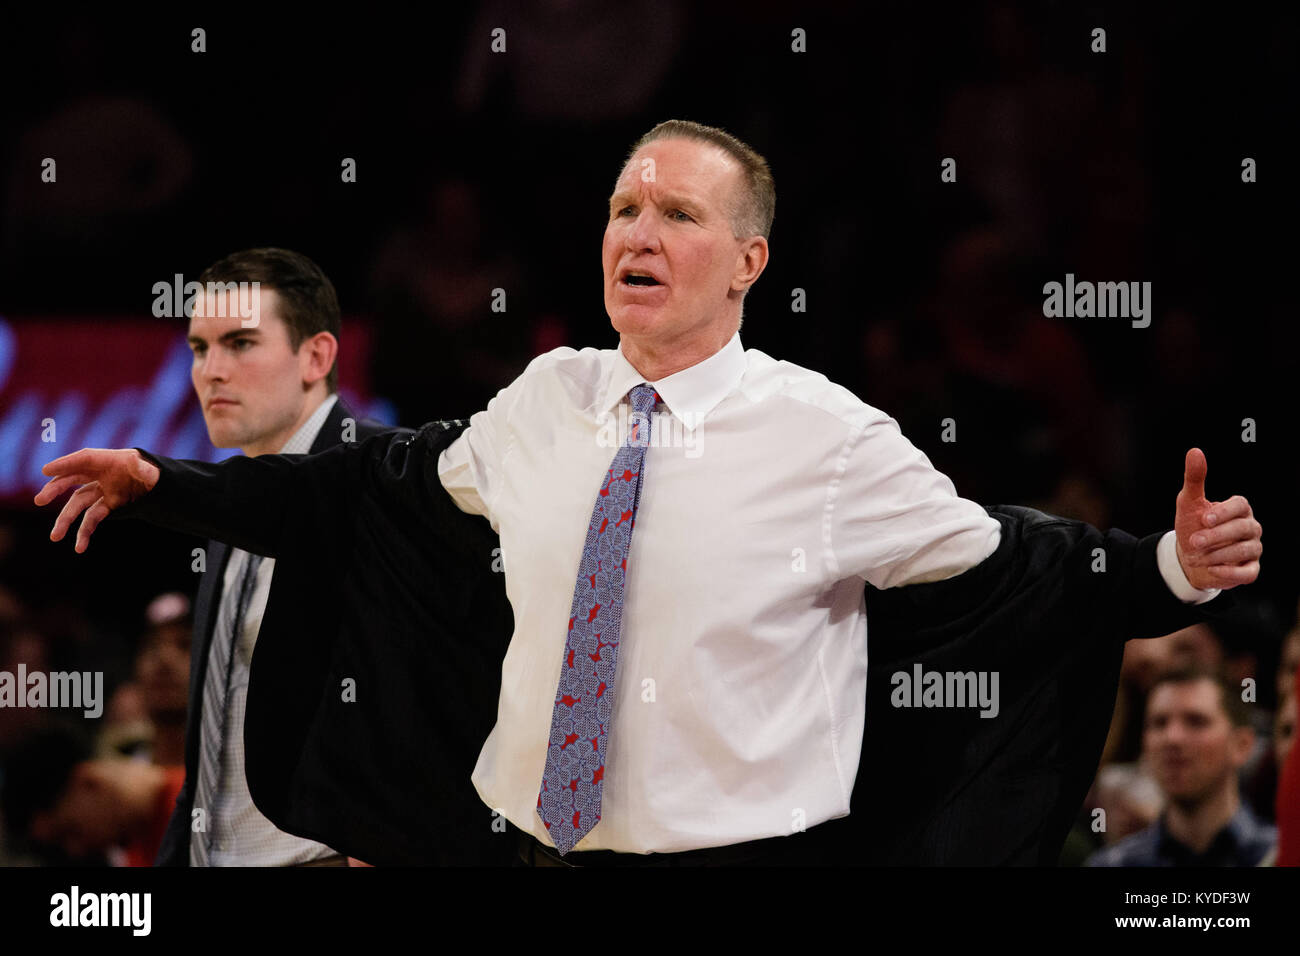 January 13, 2018: St. John's Red Storm head coach Chris Mullin takes his jacket off as he reacts to a late foul - Stock Image